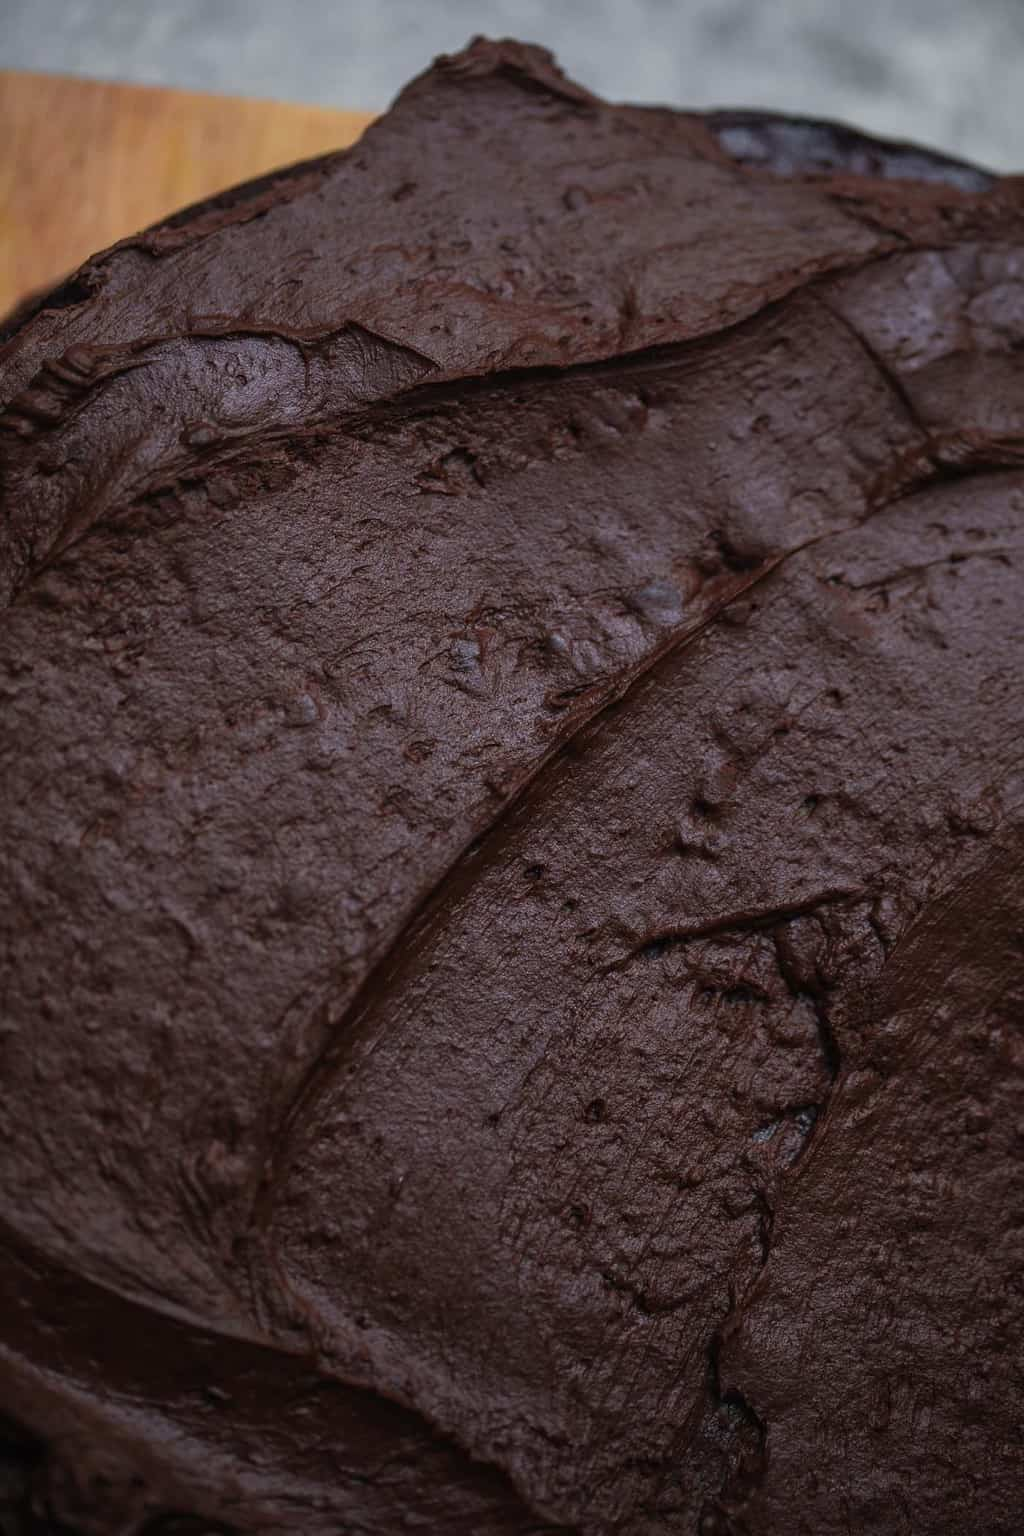 Chocolate frosting being spread on vegan cake